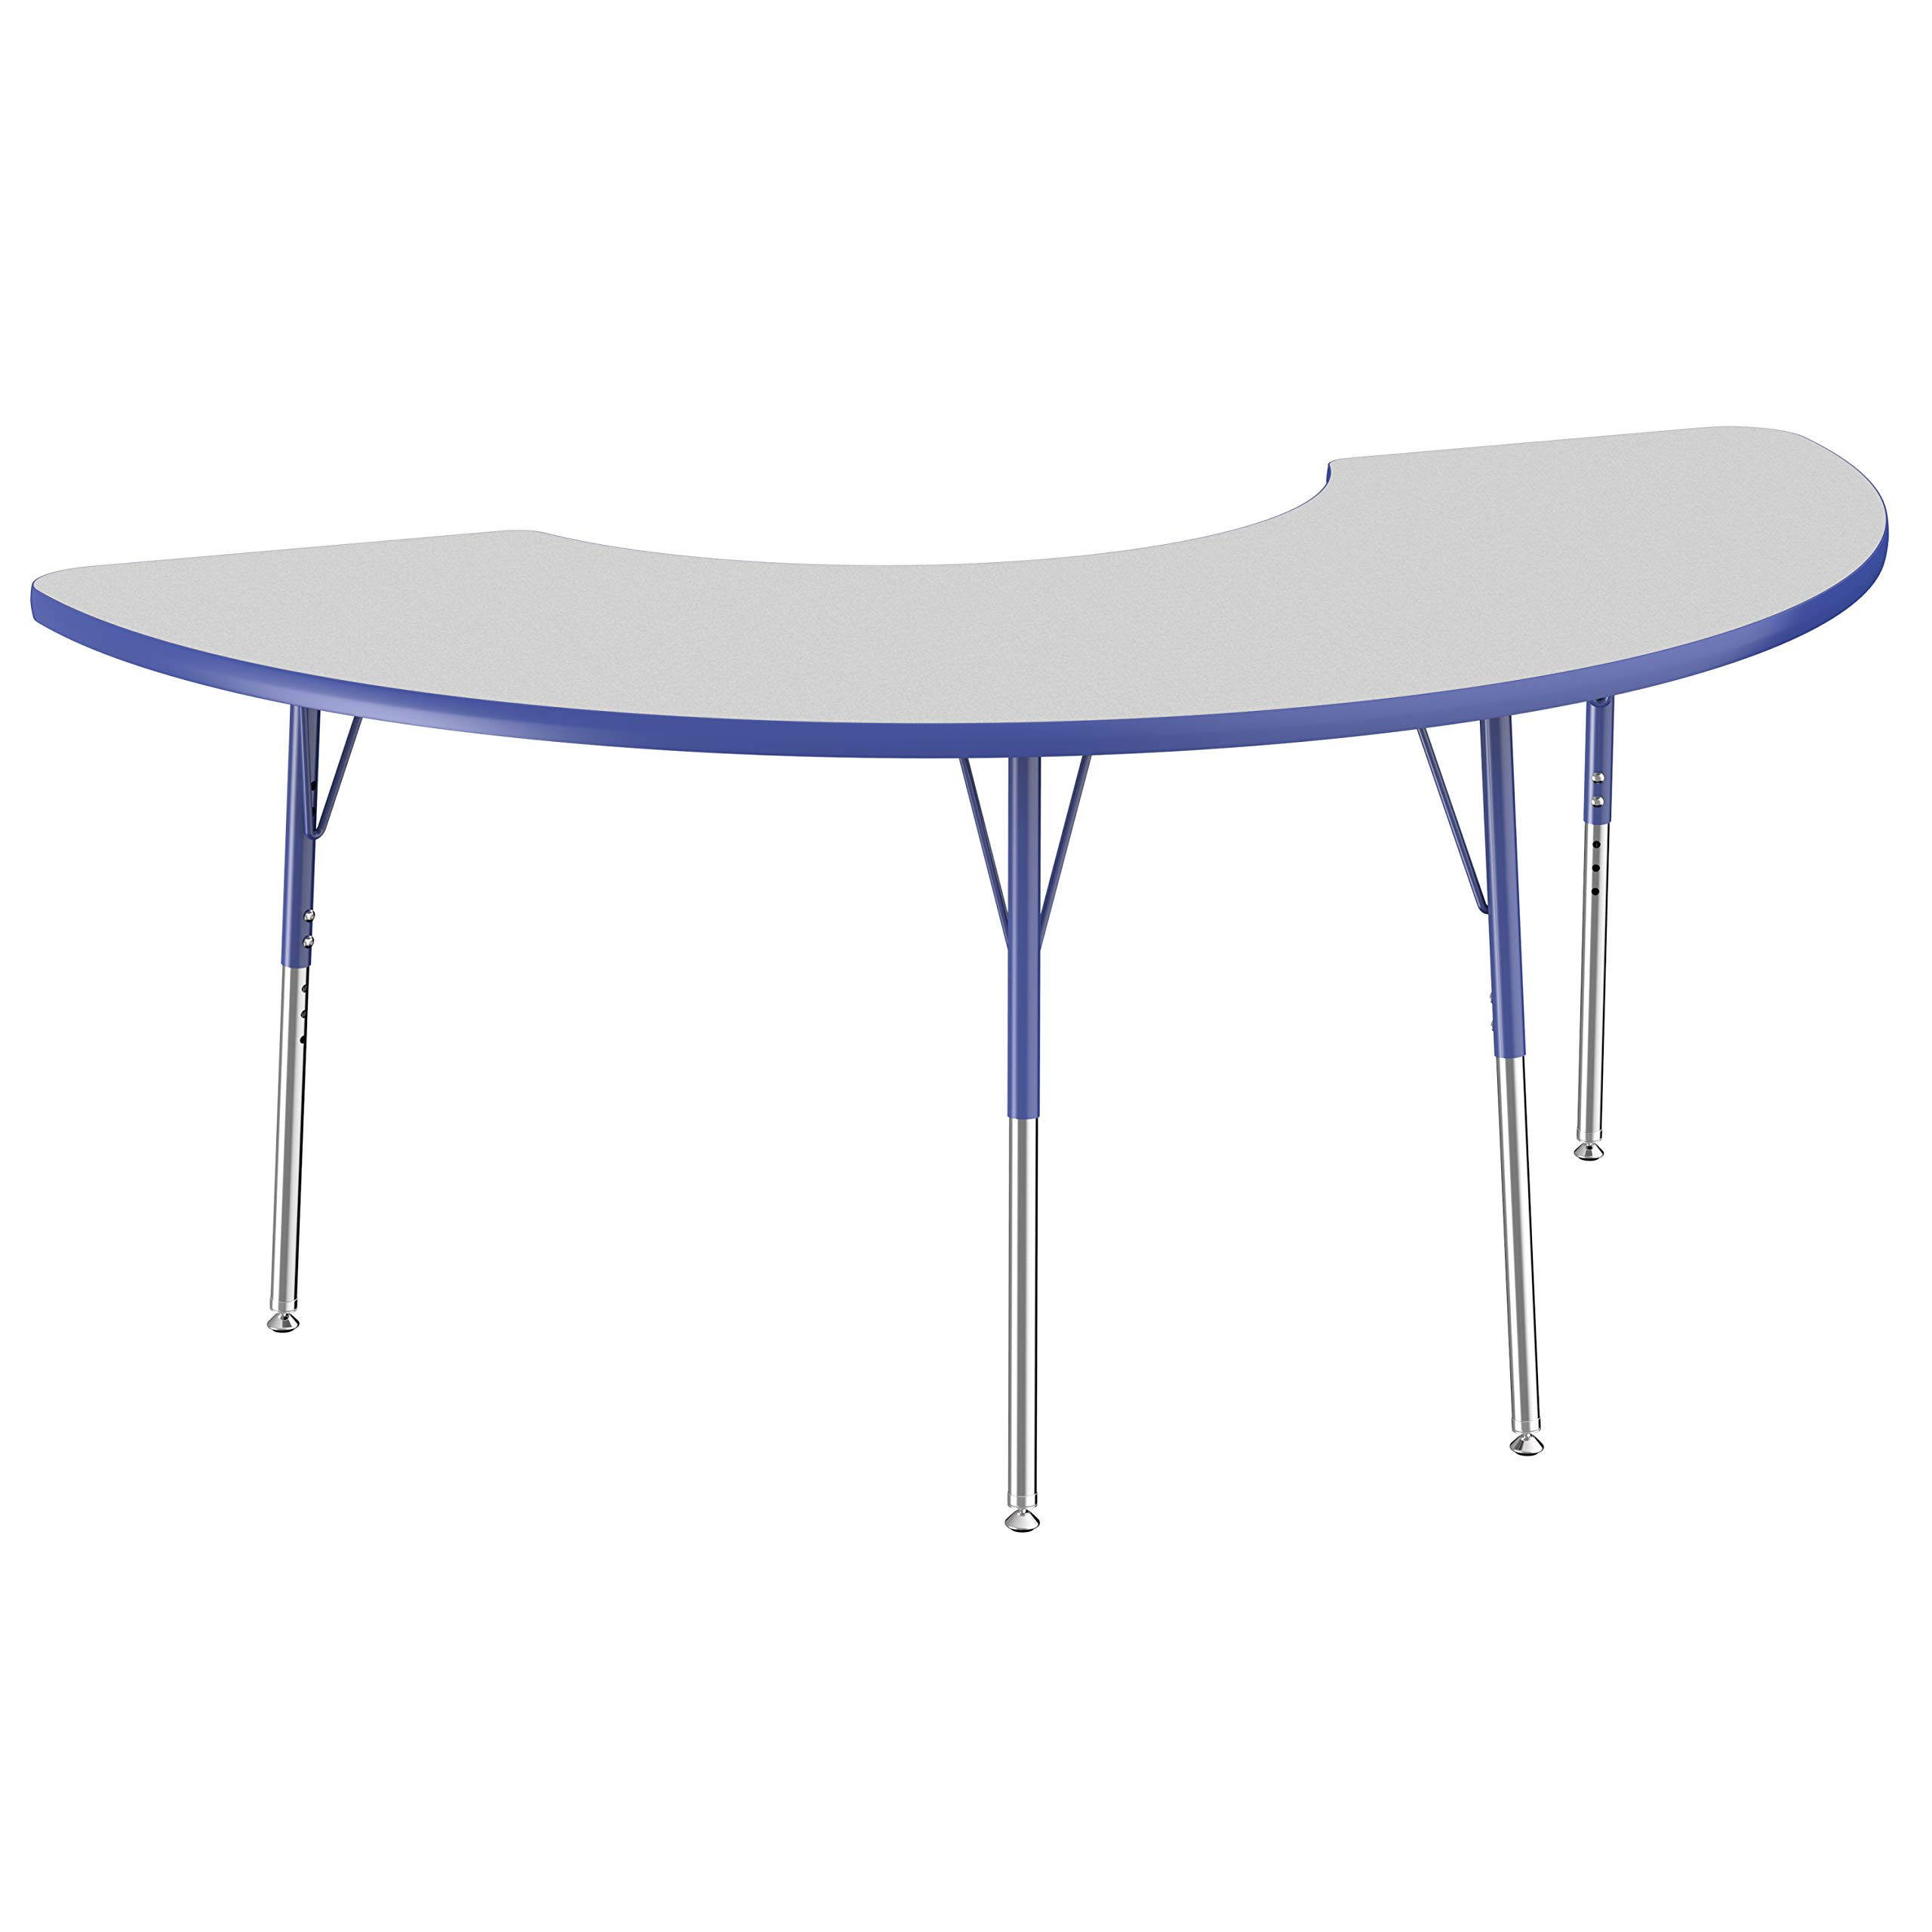 FDP Half Moon Activity School and Office Table (36 x 72 inch), Standard Legs with Swivel Glides for Collaborative Seating Environments, Adjustable Height 19-30 inches - Gray Top and Blue Edge by Factory Direct Partners